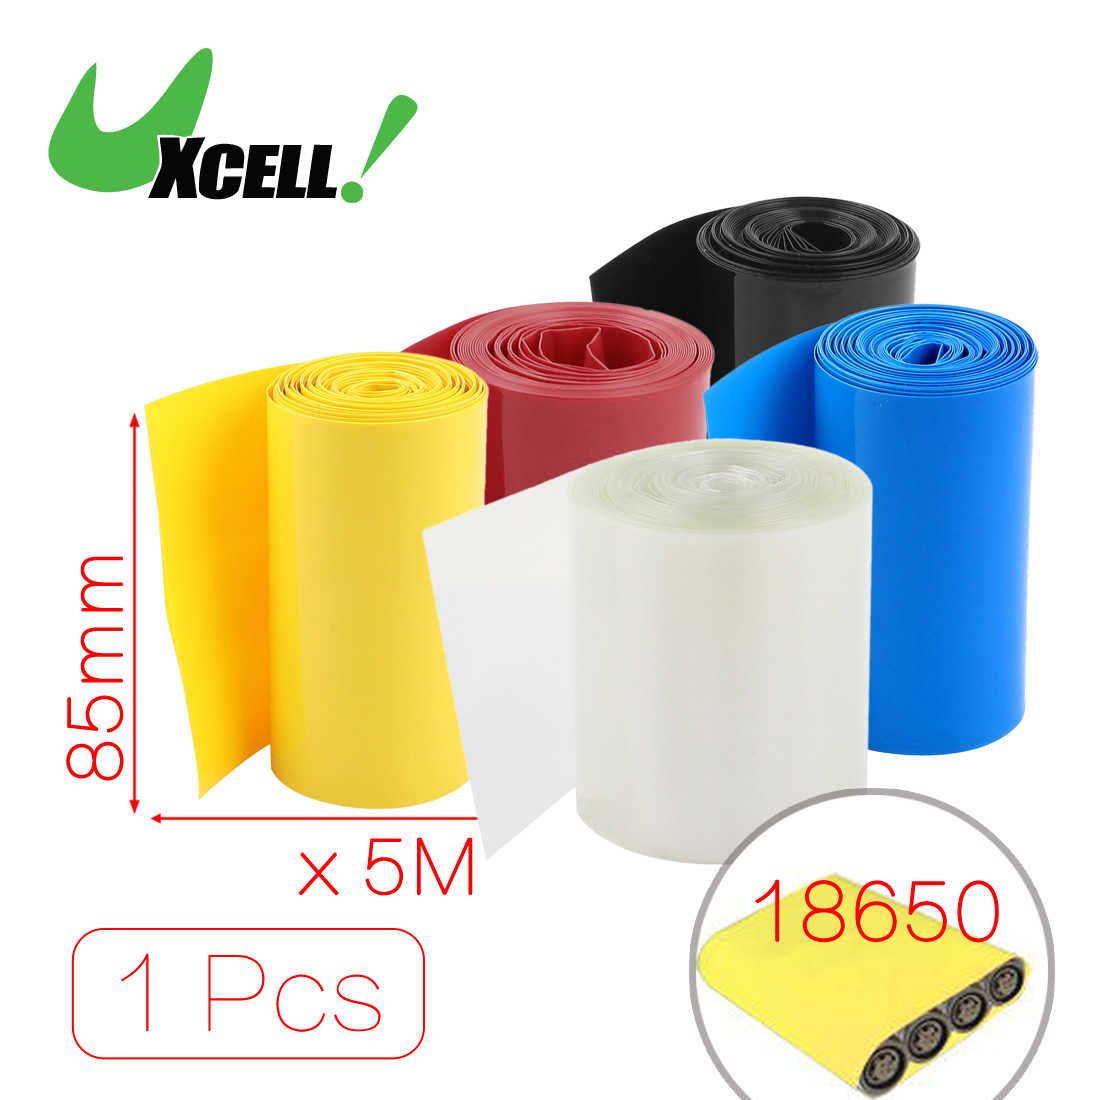 Uxcell 5Meters 85Mm Width PVC Heat Shrink Wrap Tube Blue For 18650 Battery Pack Black Blue Clear Red Yellow Heat Shrink Tubing x com ut175 ilu1 professional pvc flying disc frisbee blue yellow